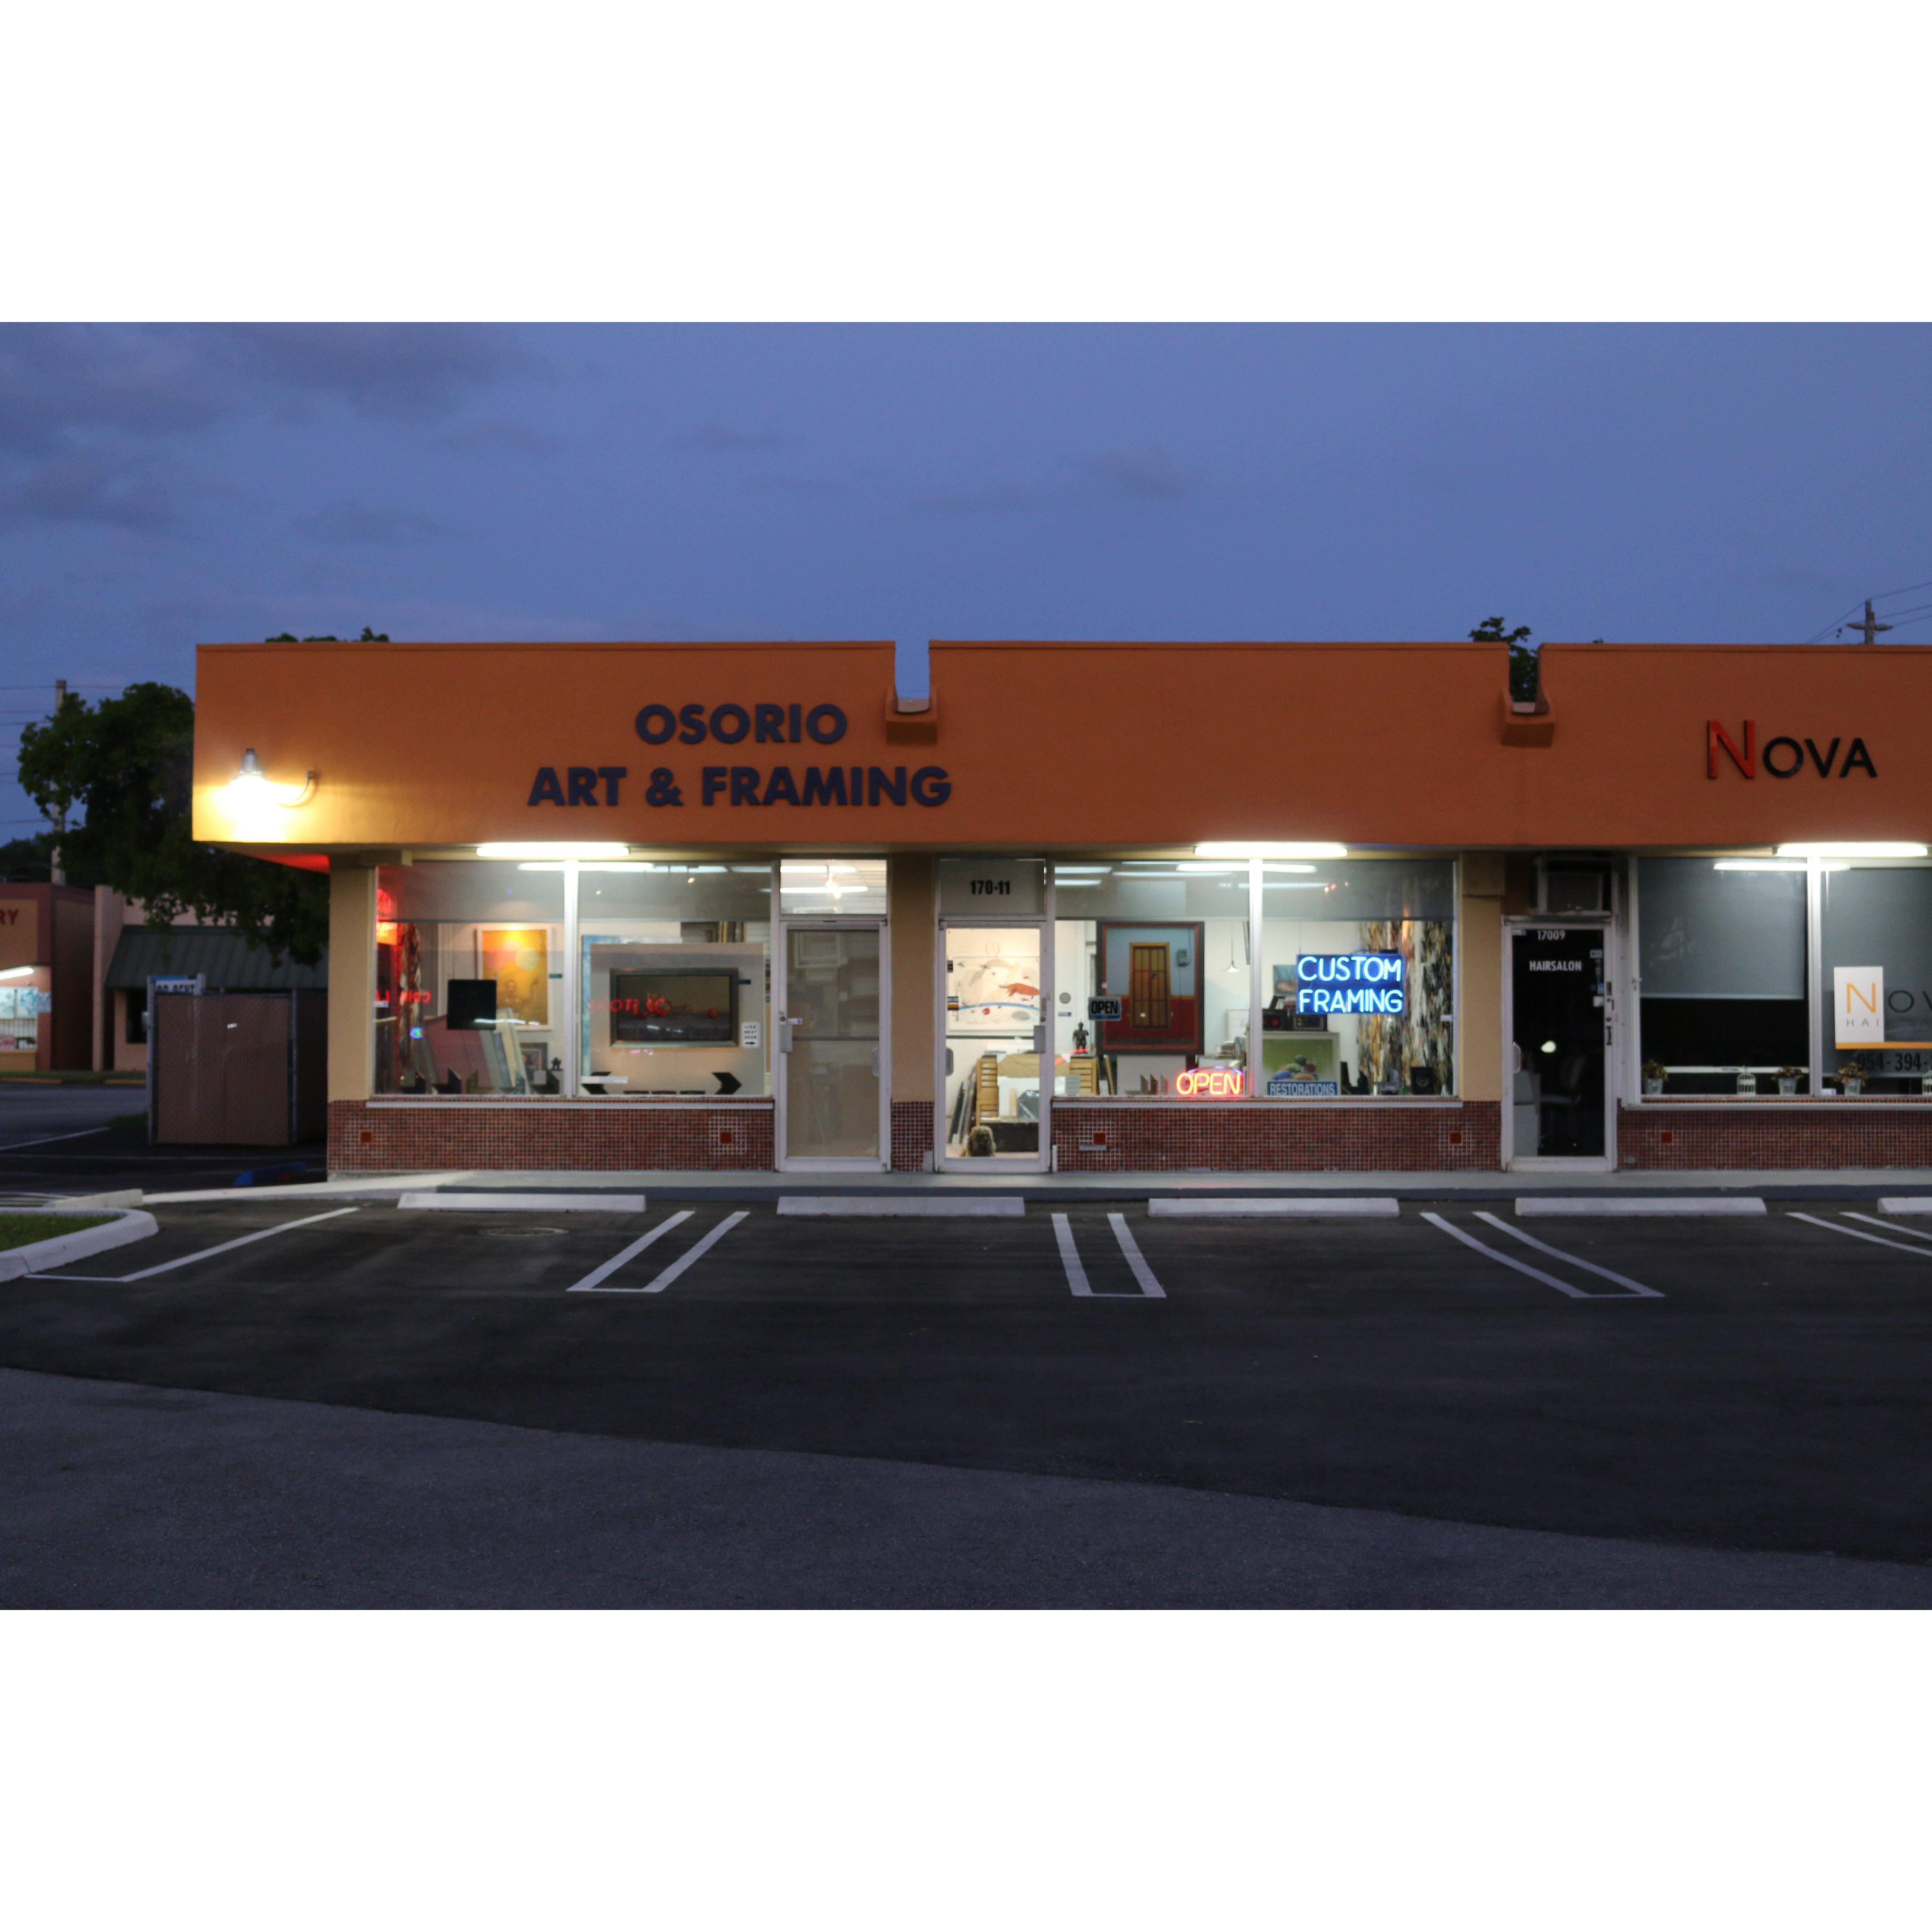 Osorio Art & Framing 17011 WEST DIXIE HWY North Miami